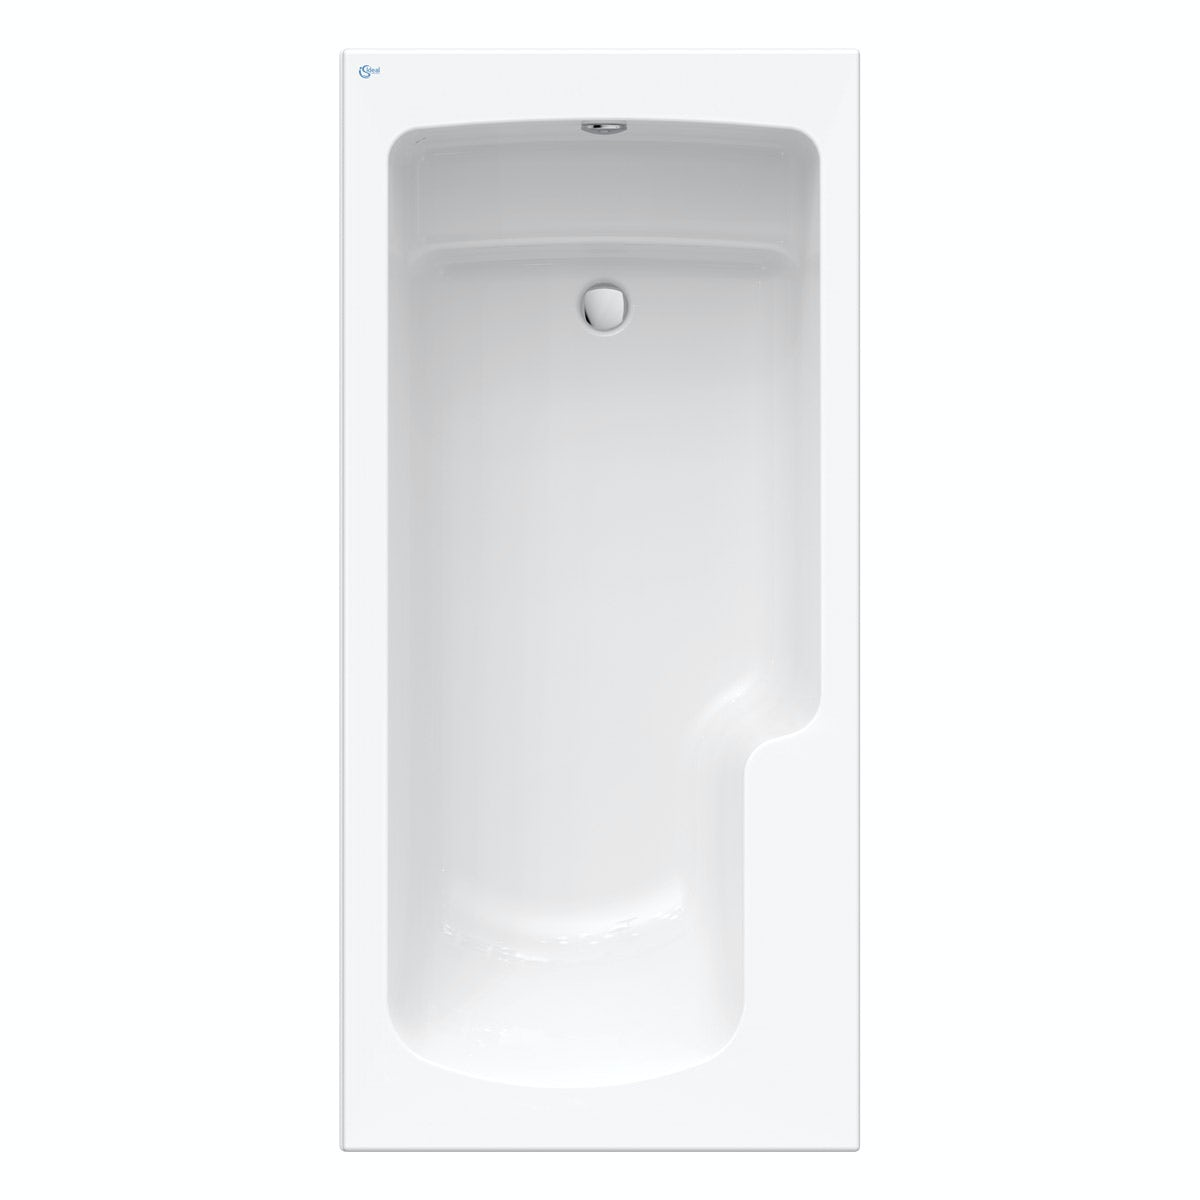 Ideal Standard Concept Freedom Idealform Plus right handed shower bath 1700 x 800 with front bath panel and bath waste